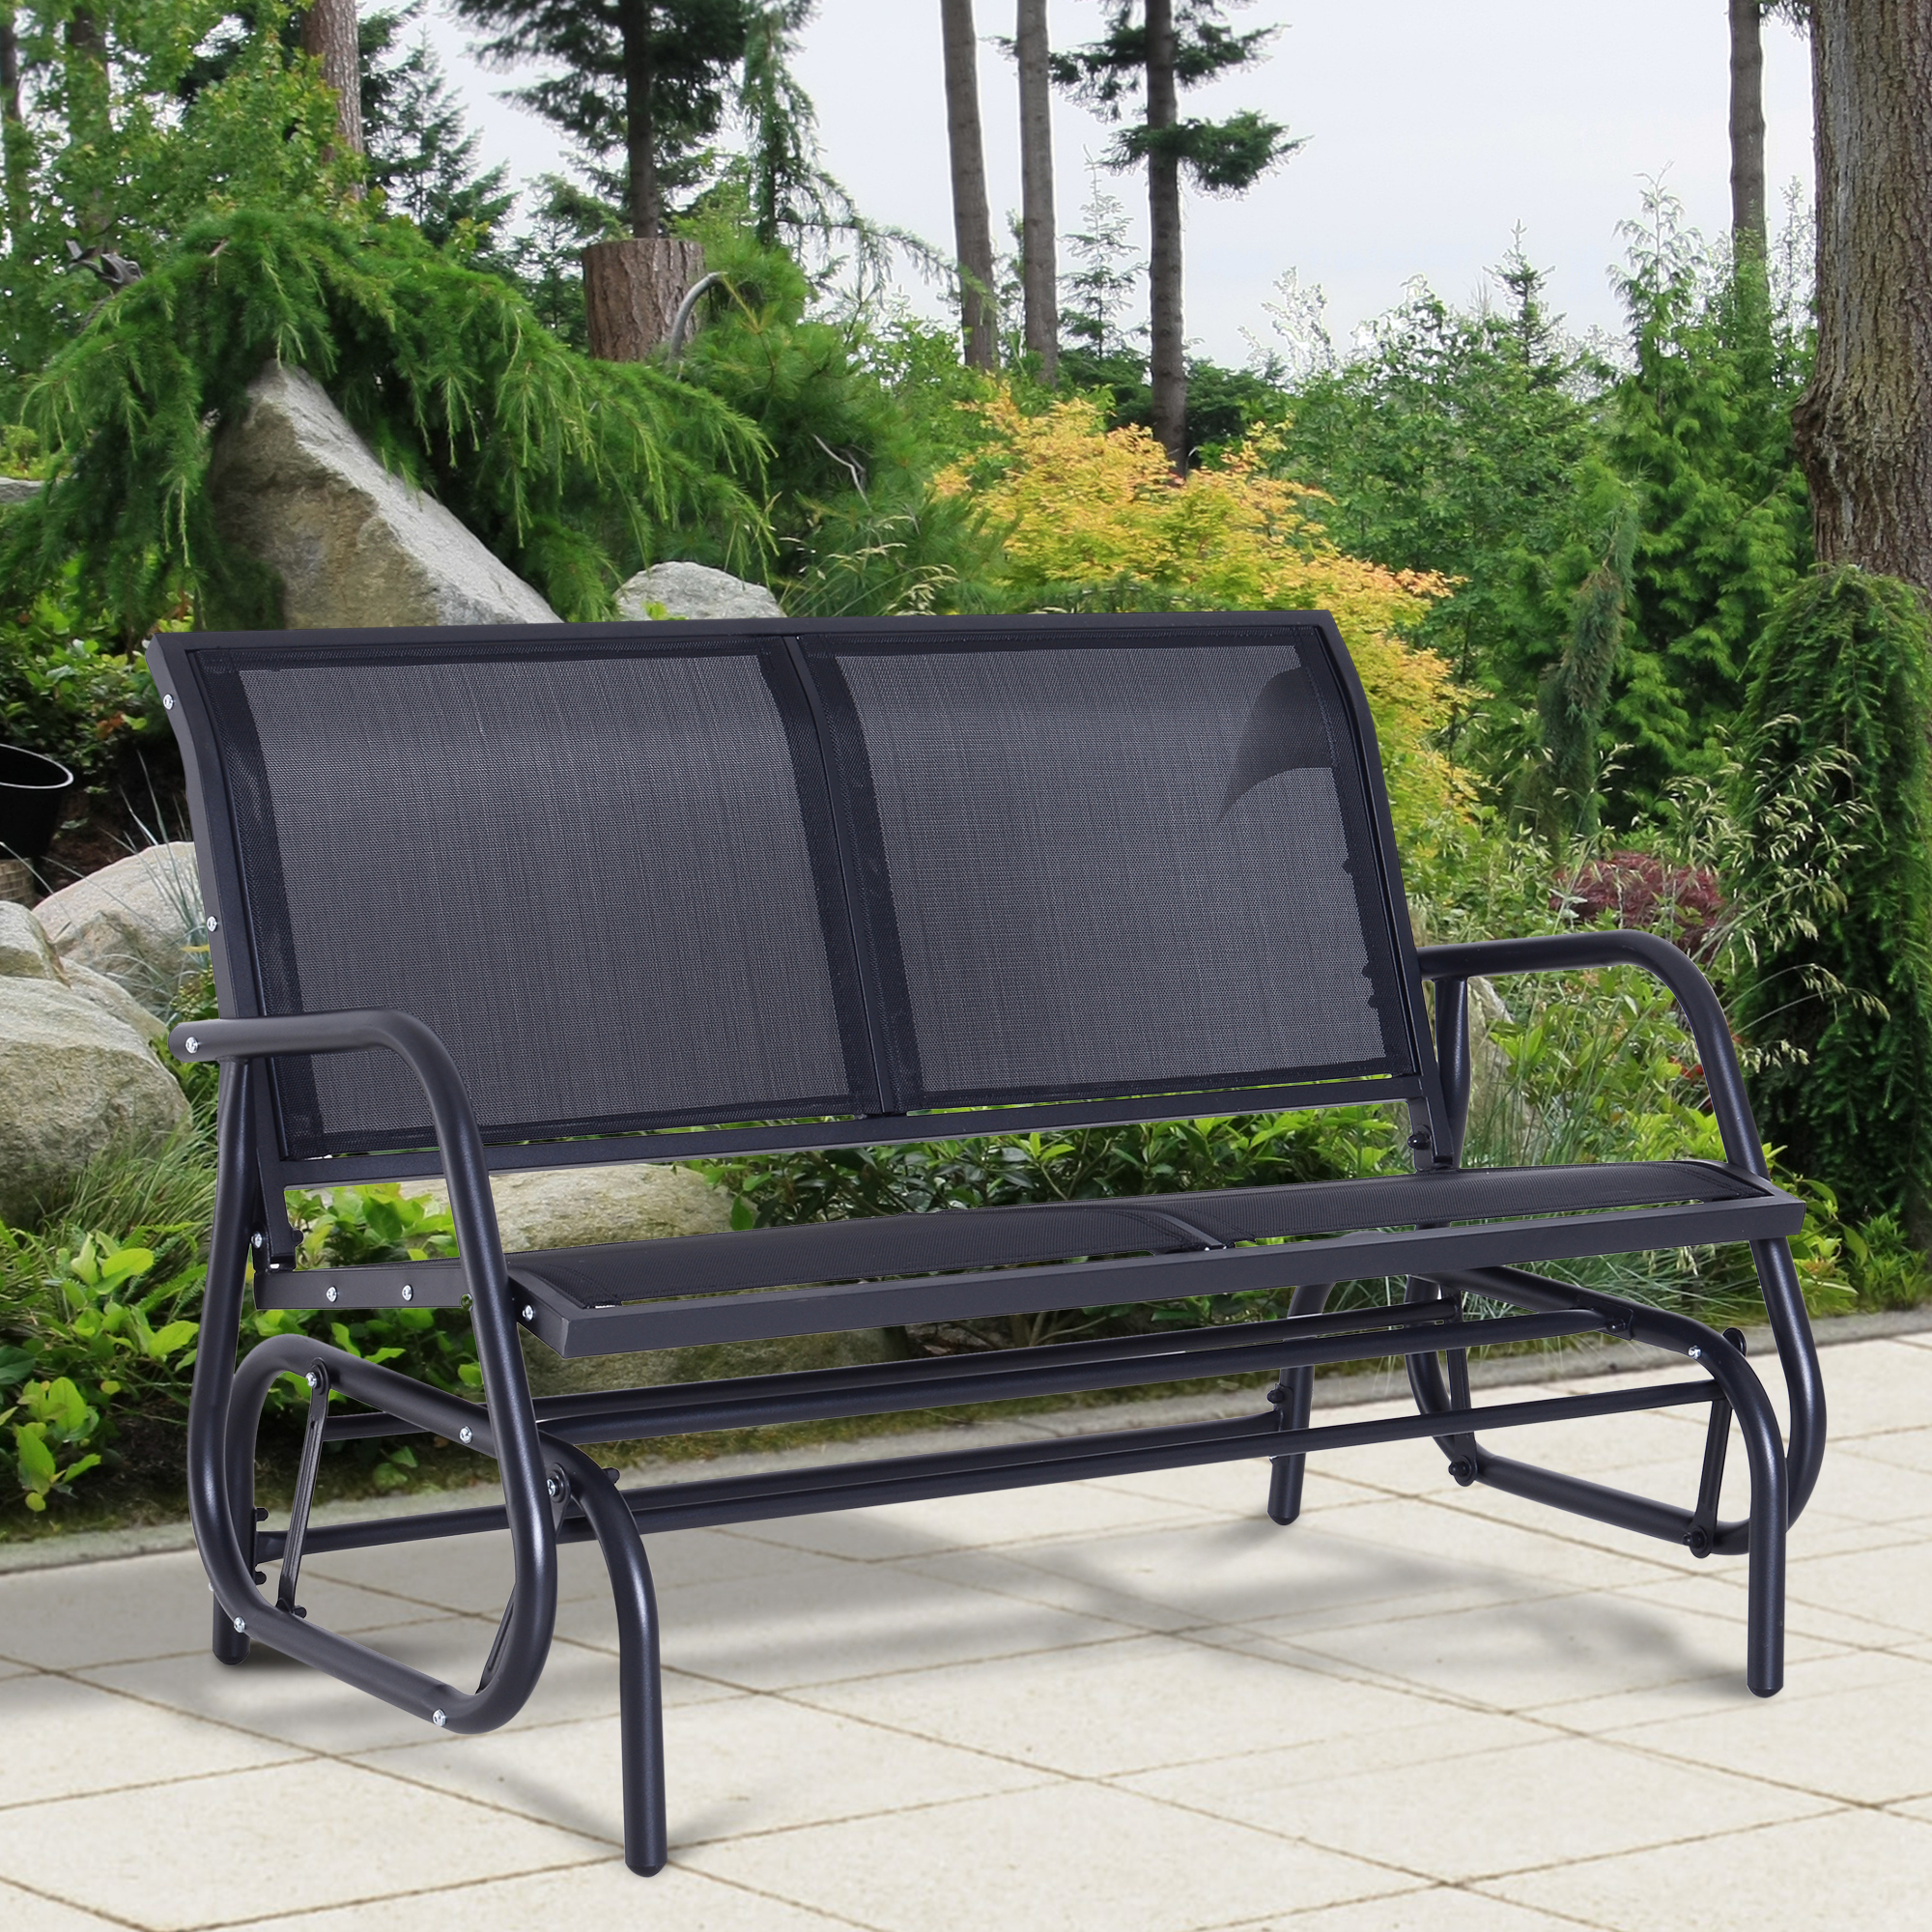 Details About Outsunny Patio Garden Glider Bench 2 Person Double Swing  Chair Rocker Deck Black Pertaining To Iron Double Patio Glider Benches (Image 8 of 25)